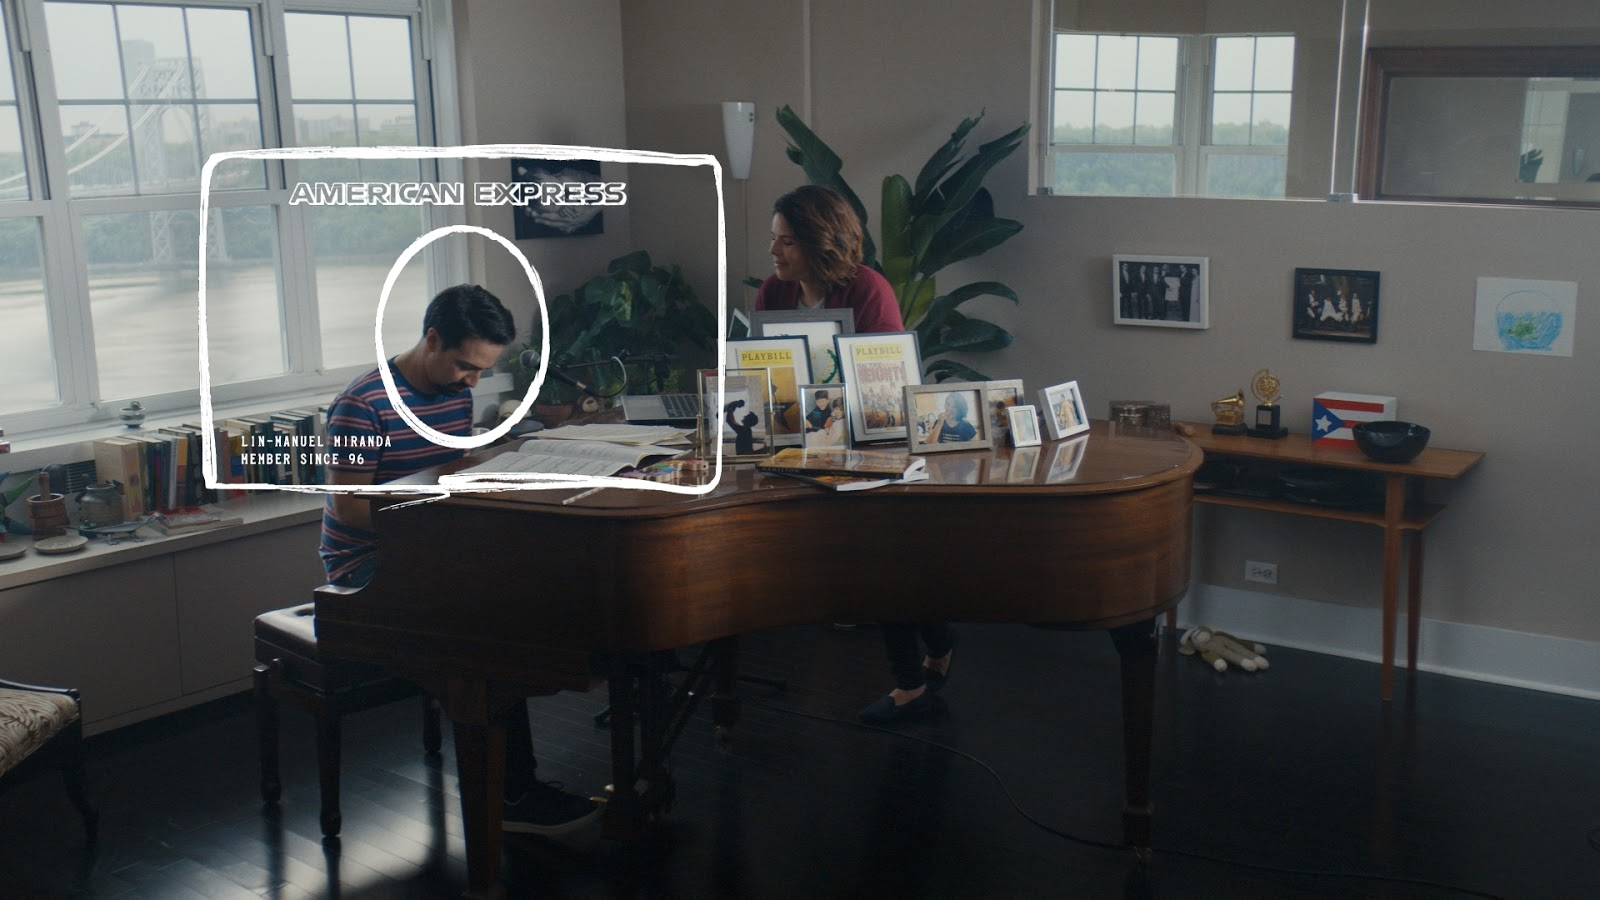 Stupendous Amex Debuts New Ad Campaign With Lin Manuel Miranda Adstasher Home Interior And Landscaping Eliaenasavecom